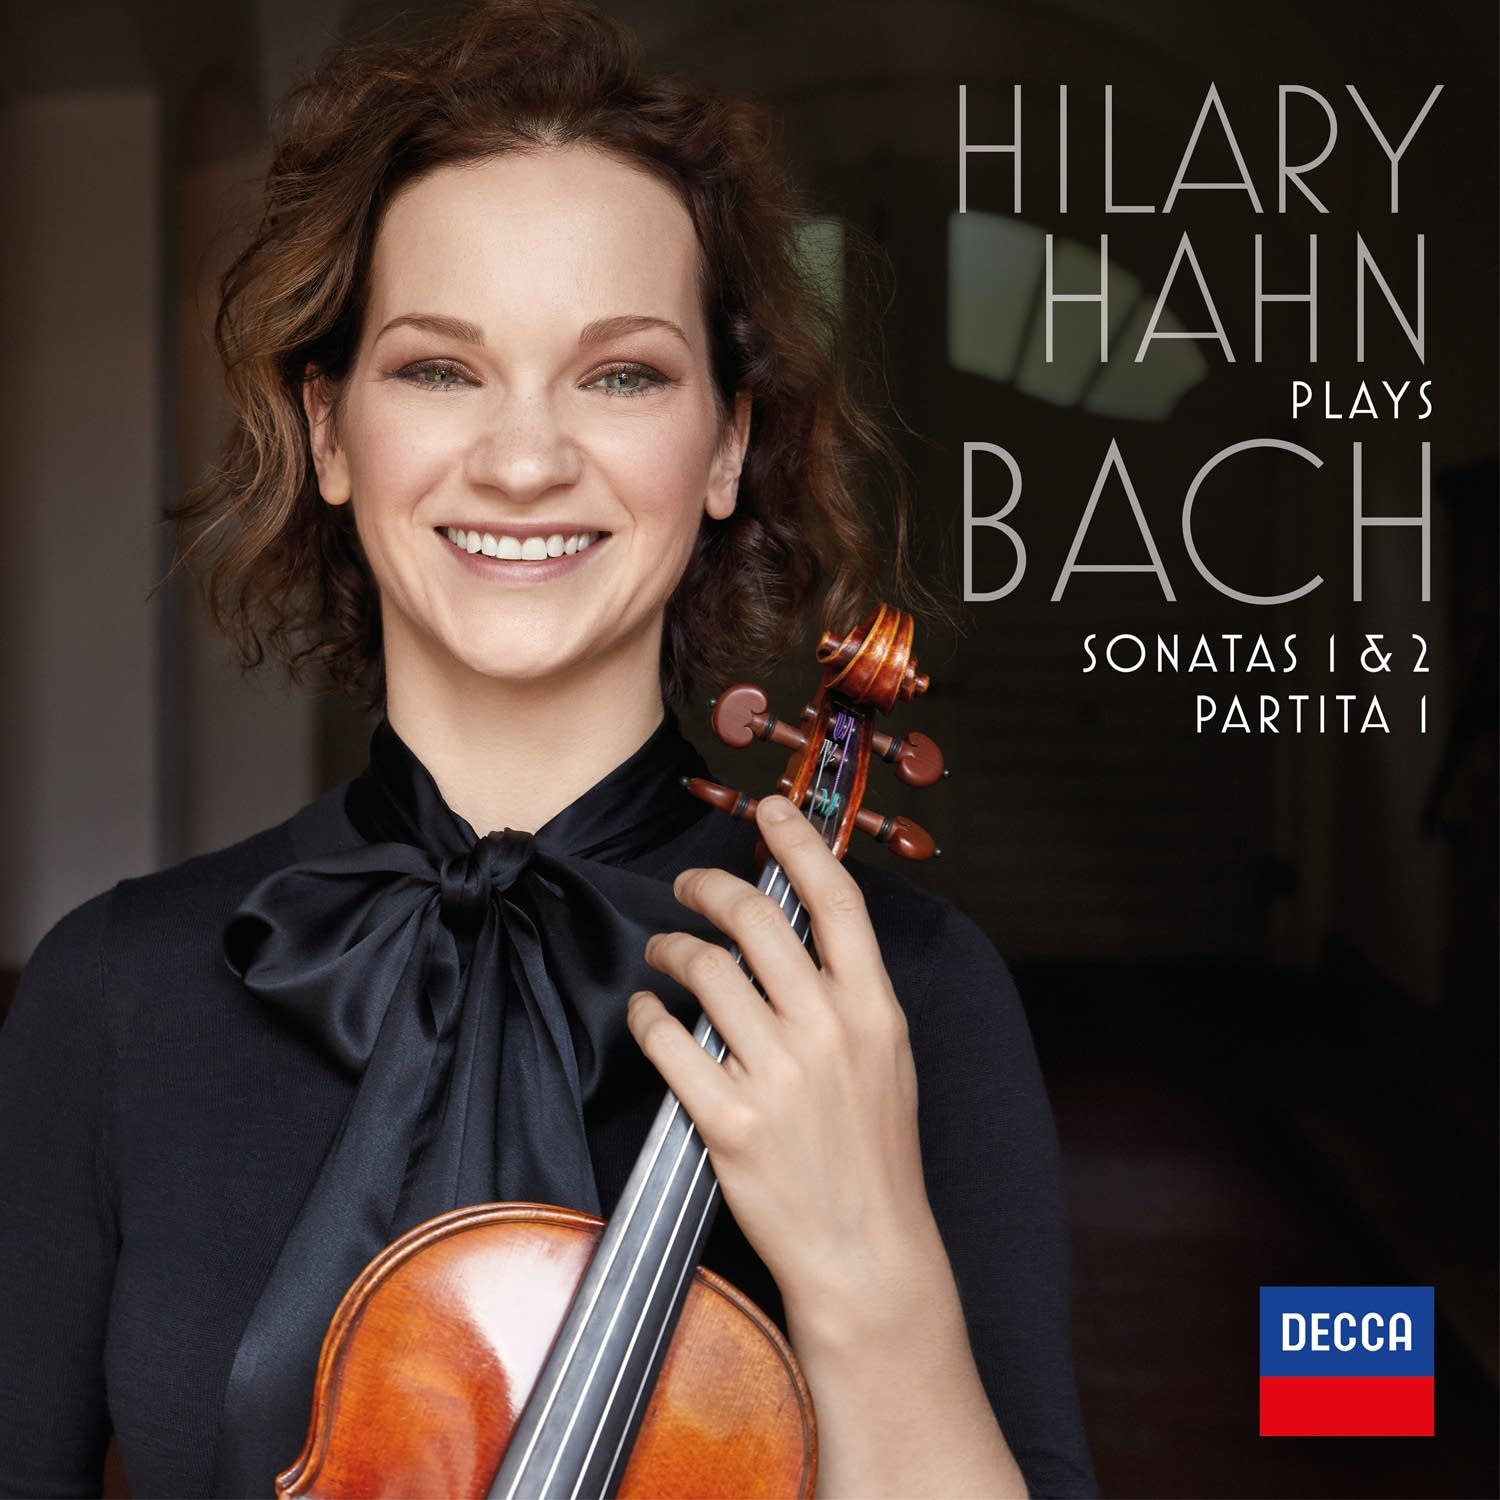 Hilary Hahn's second solo album of music by Bach